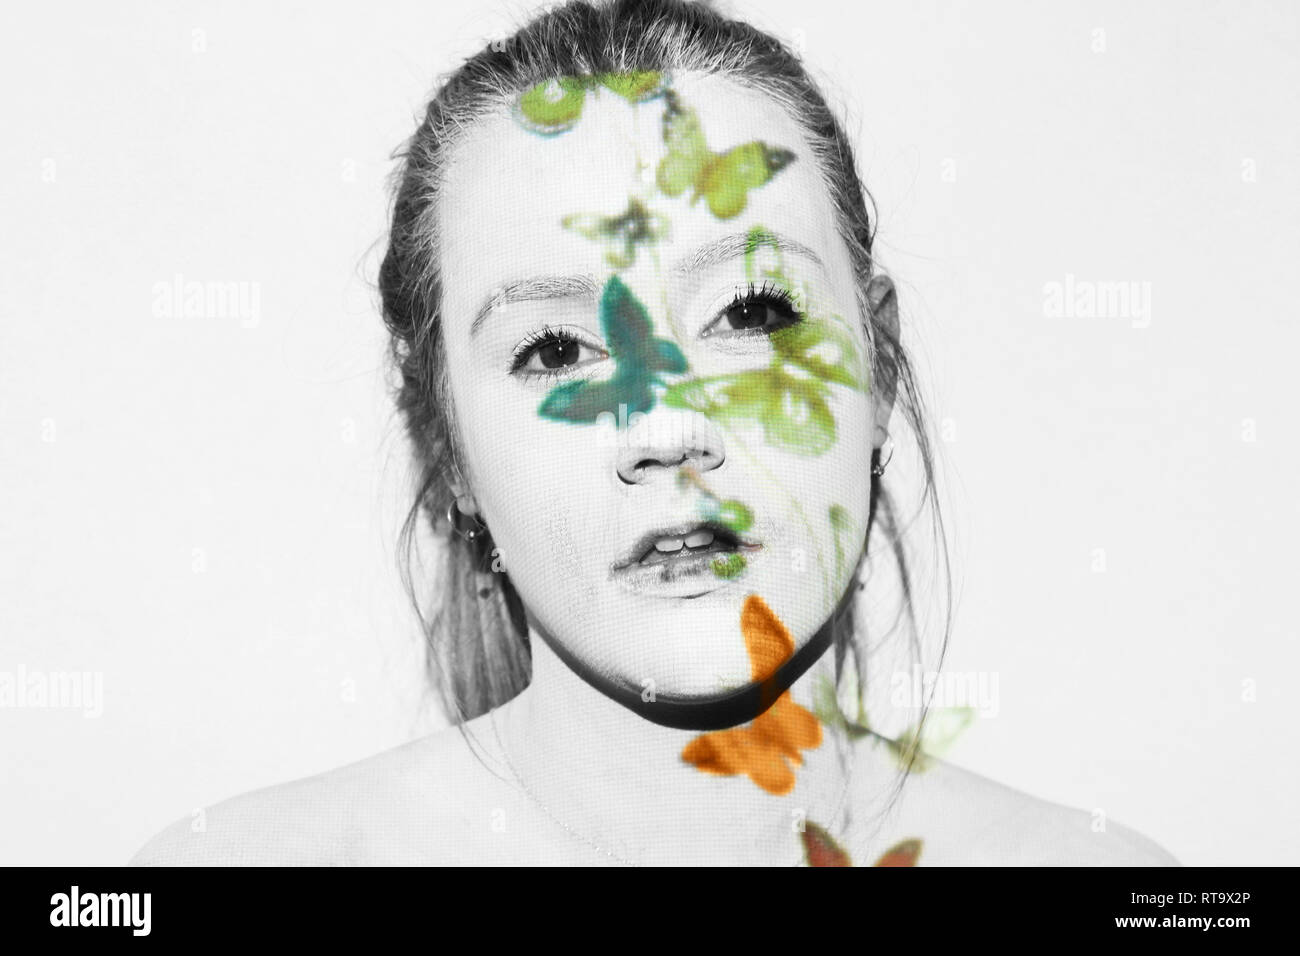 Woman covered in white paint has butterflies projected onto her. She looks emptily into the camera. - Stock Image